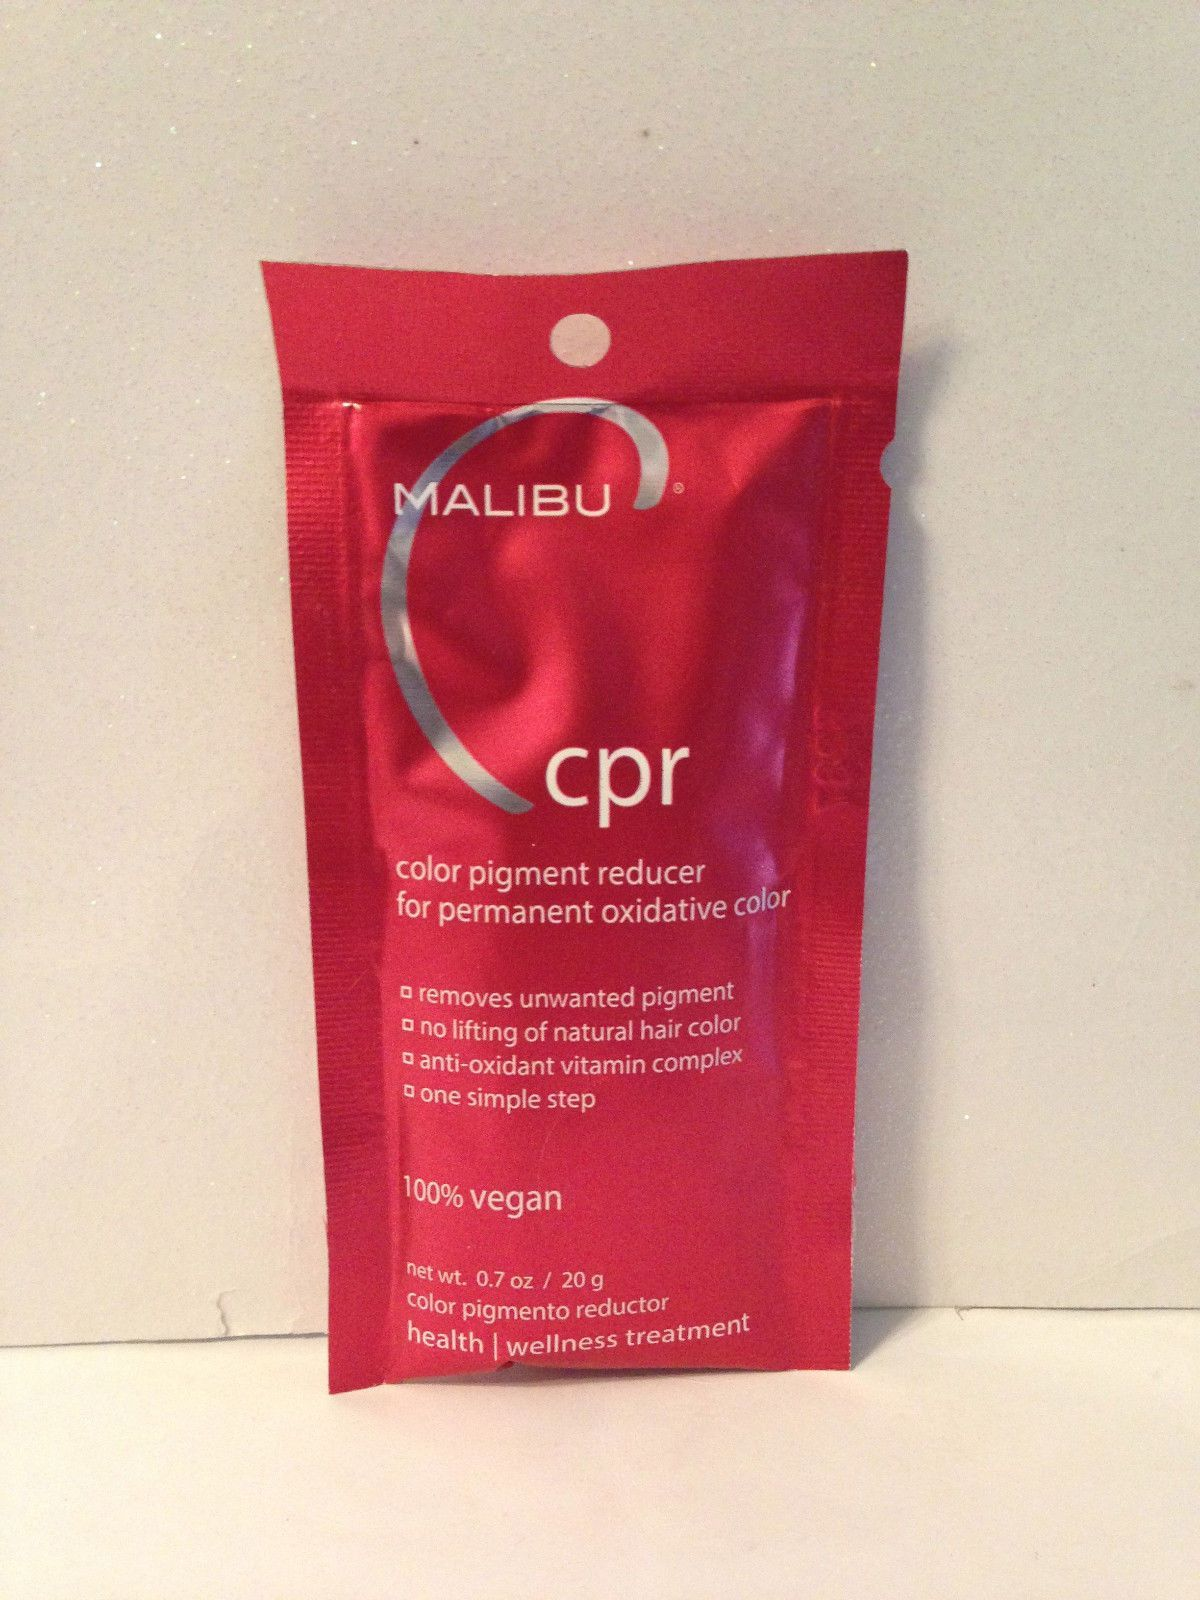 Malibu wellness c cpr color pigment reducer g packet products